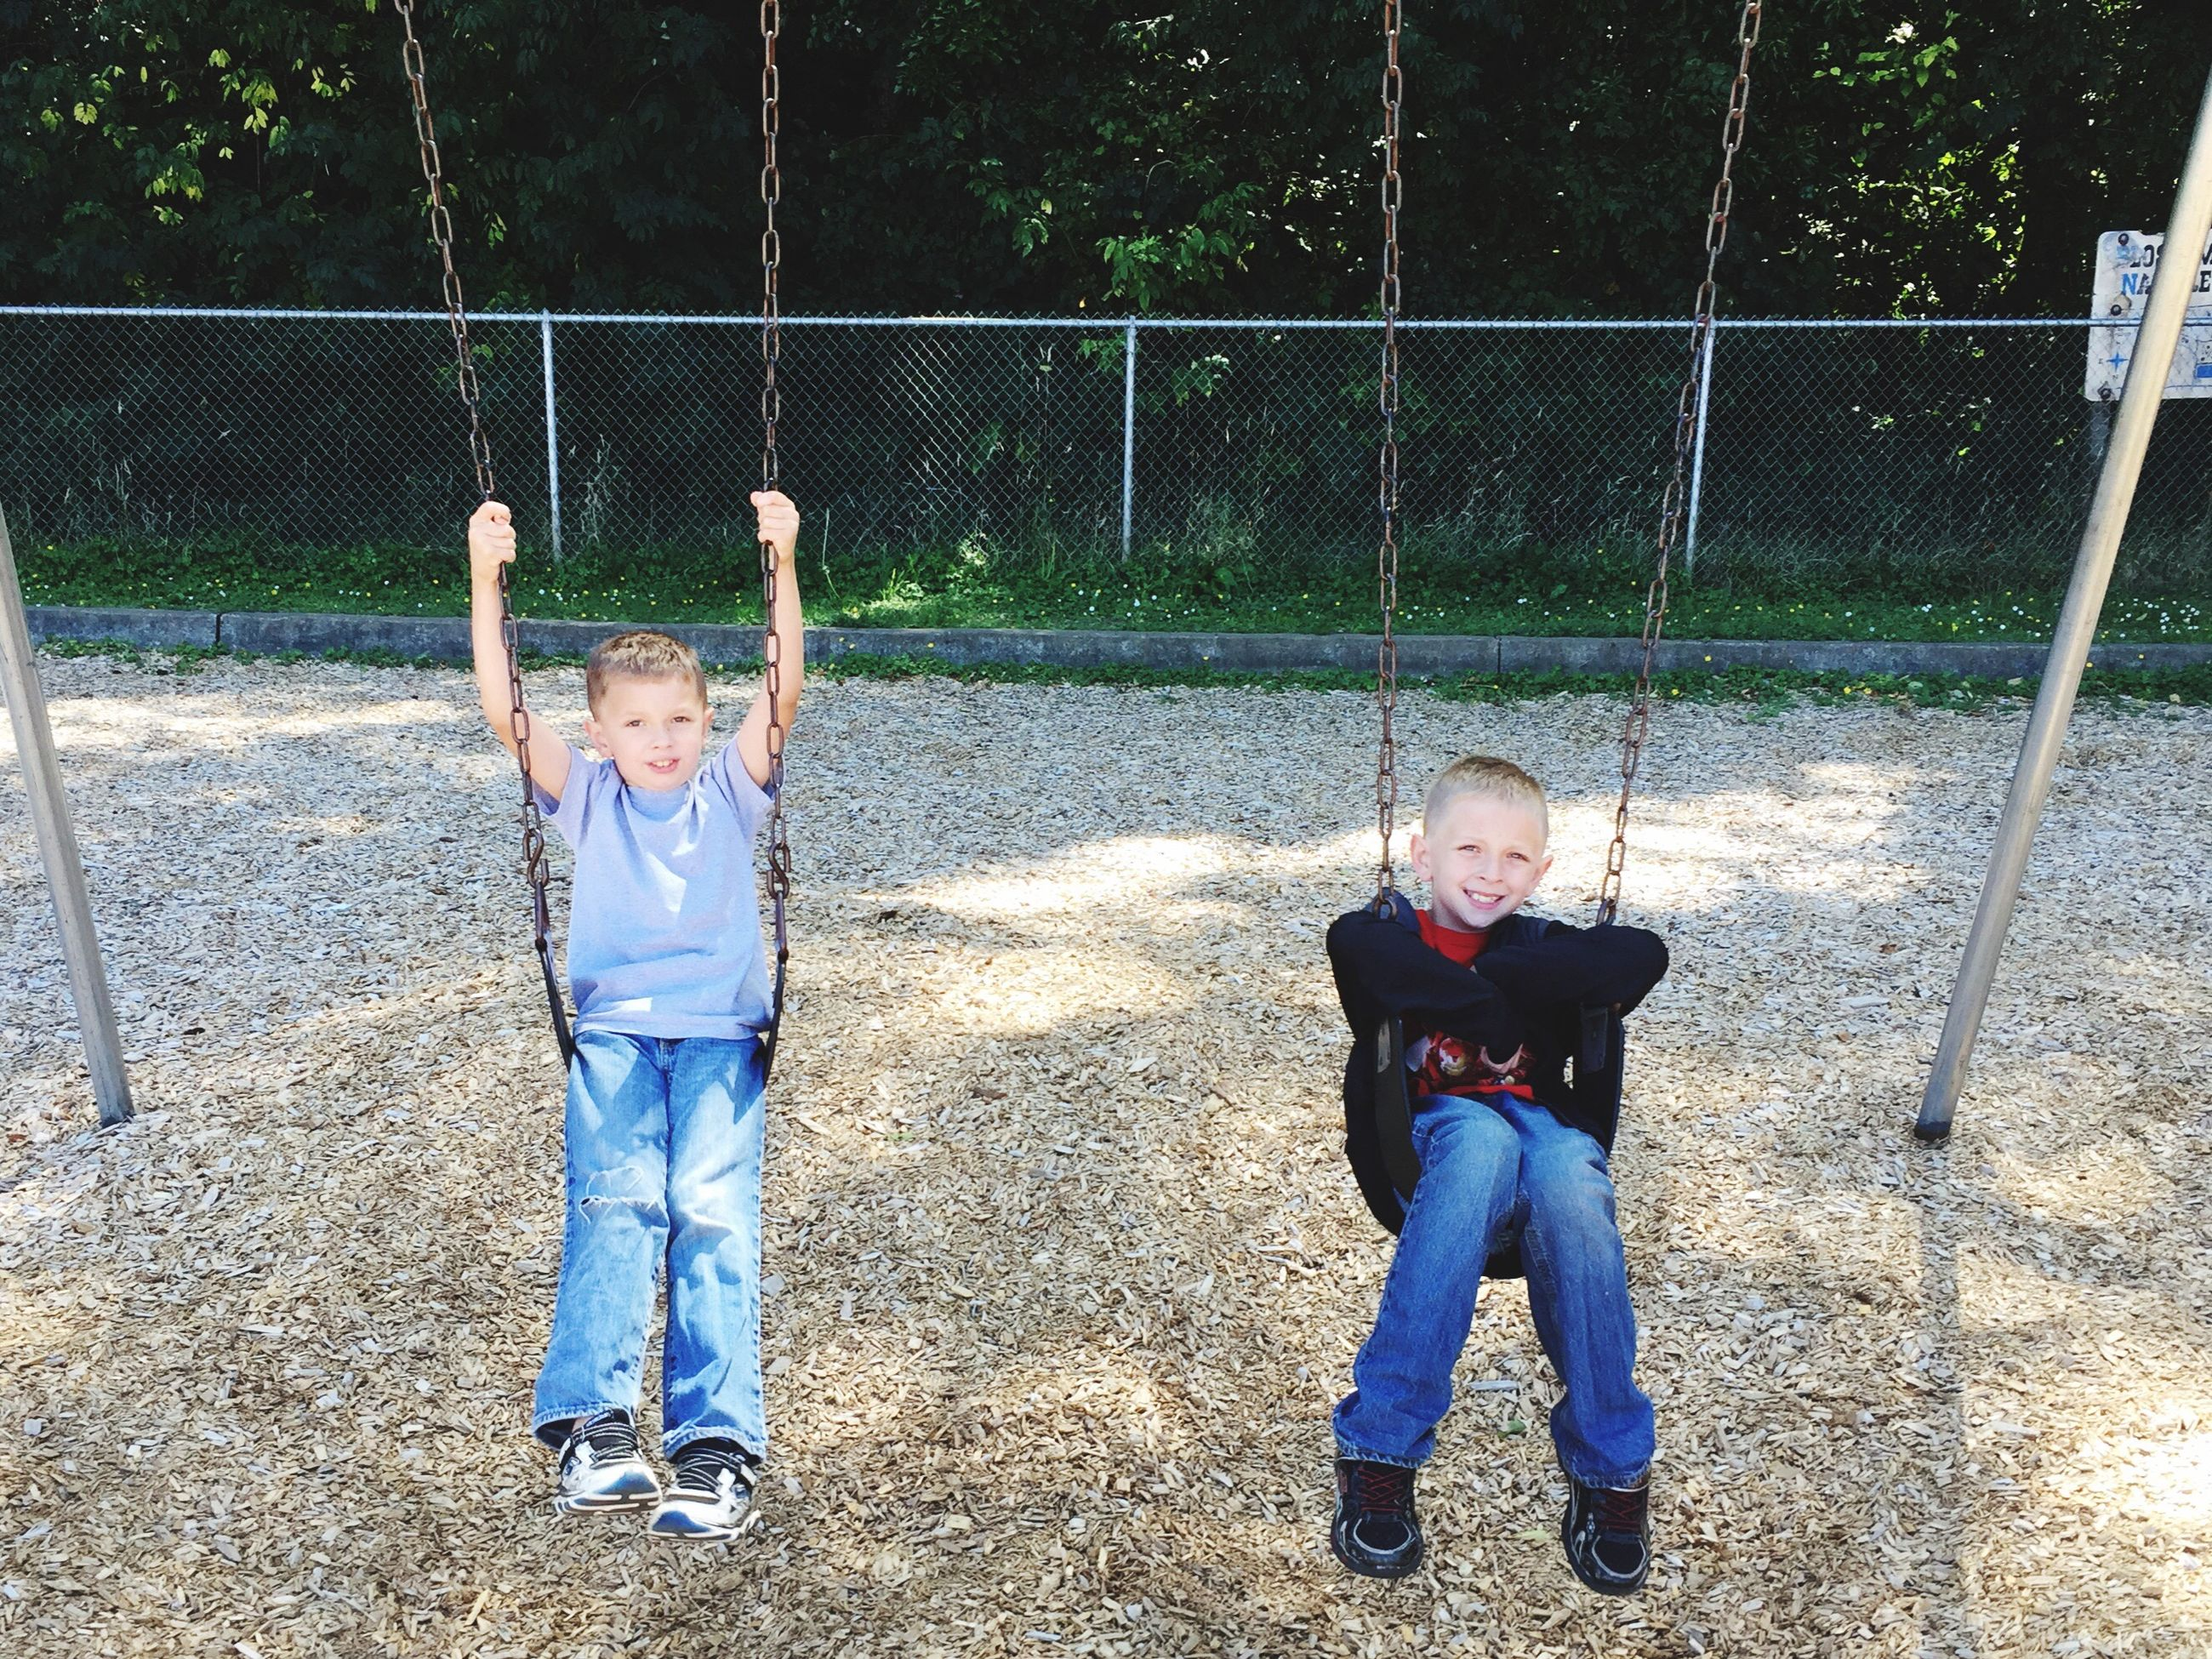 childhood, elementary age, togetherness, casual clothing, full length, boys, girls, playing, love, bonding, person, sibling, leisure activity, lifestyles, standing, sister, smiling, brother, preschool age, motion, day, friendship, family, fence, innocence, enjoyment, fun, outdoors